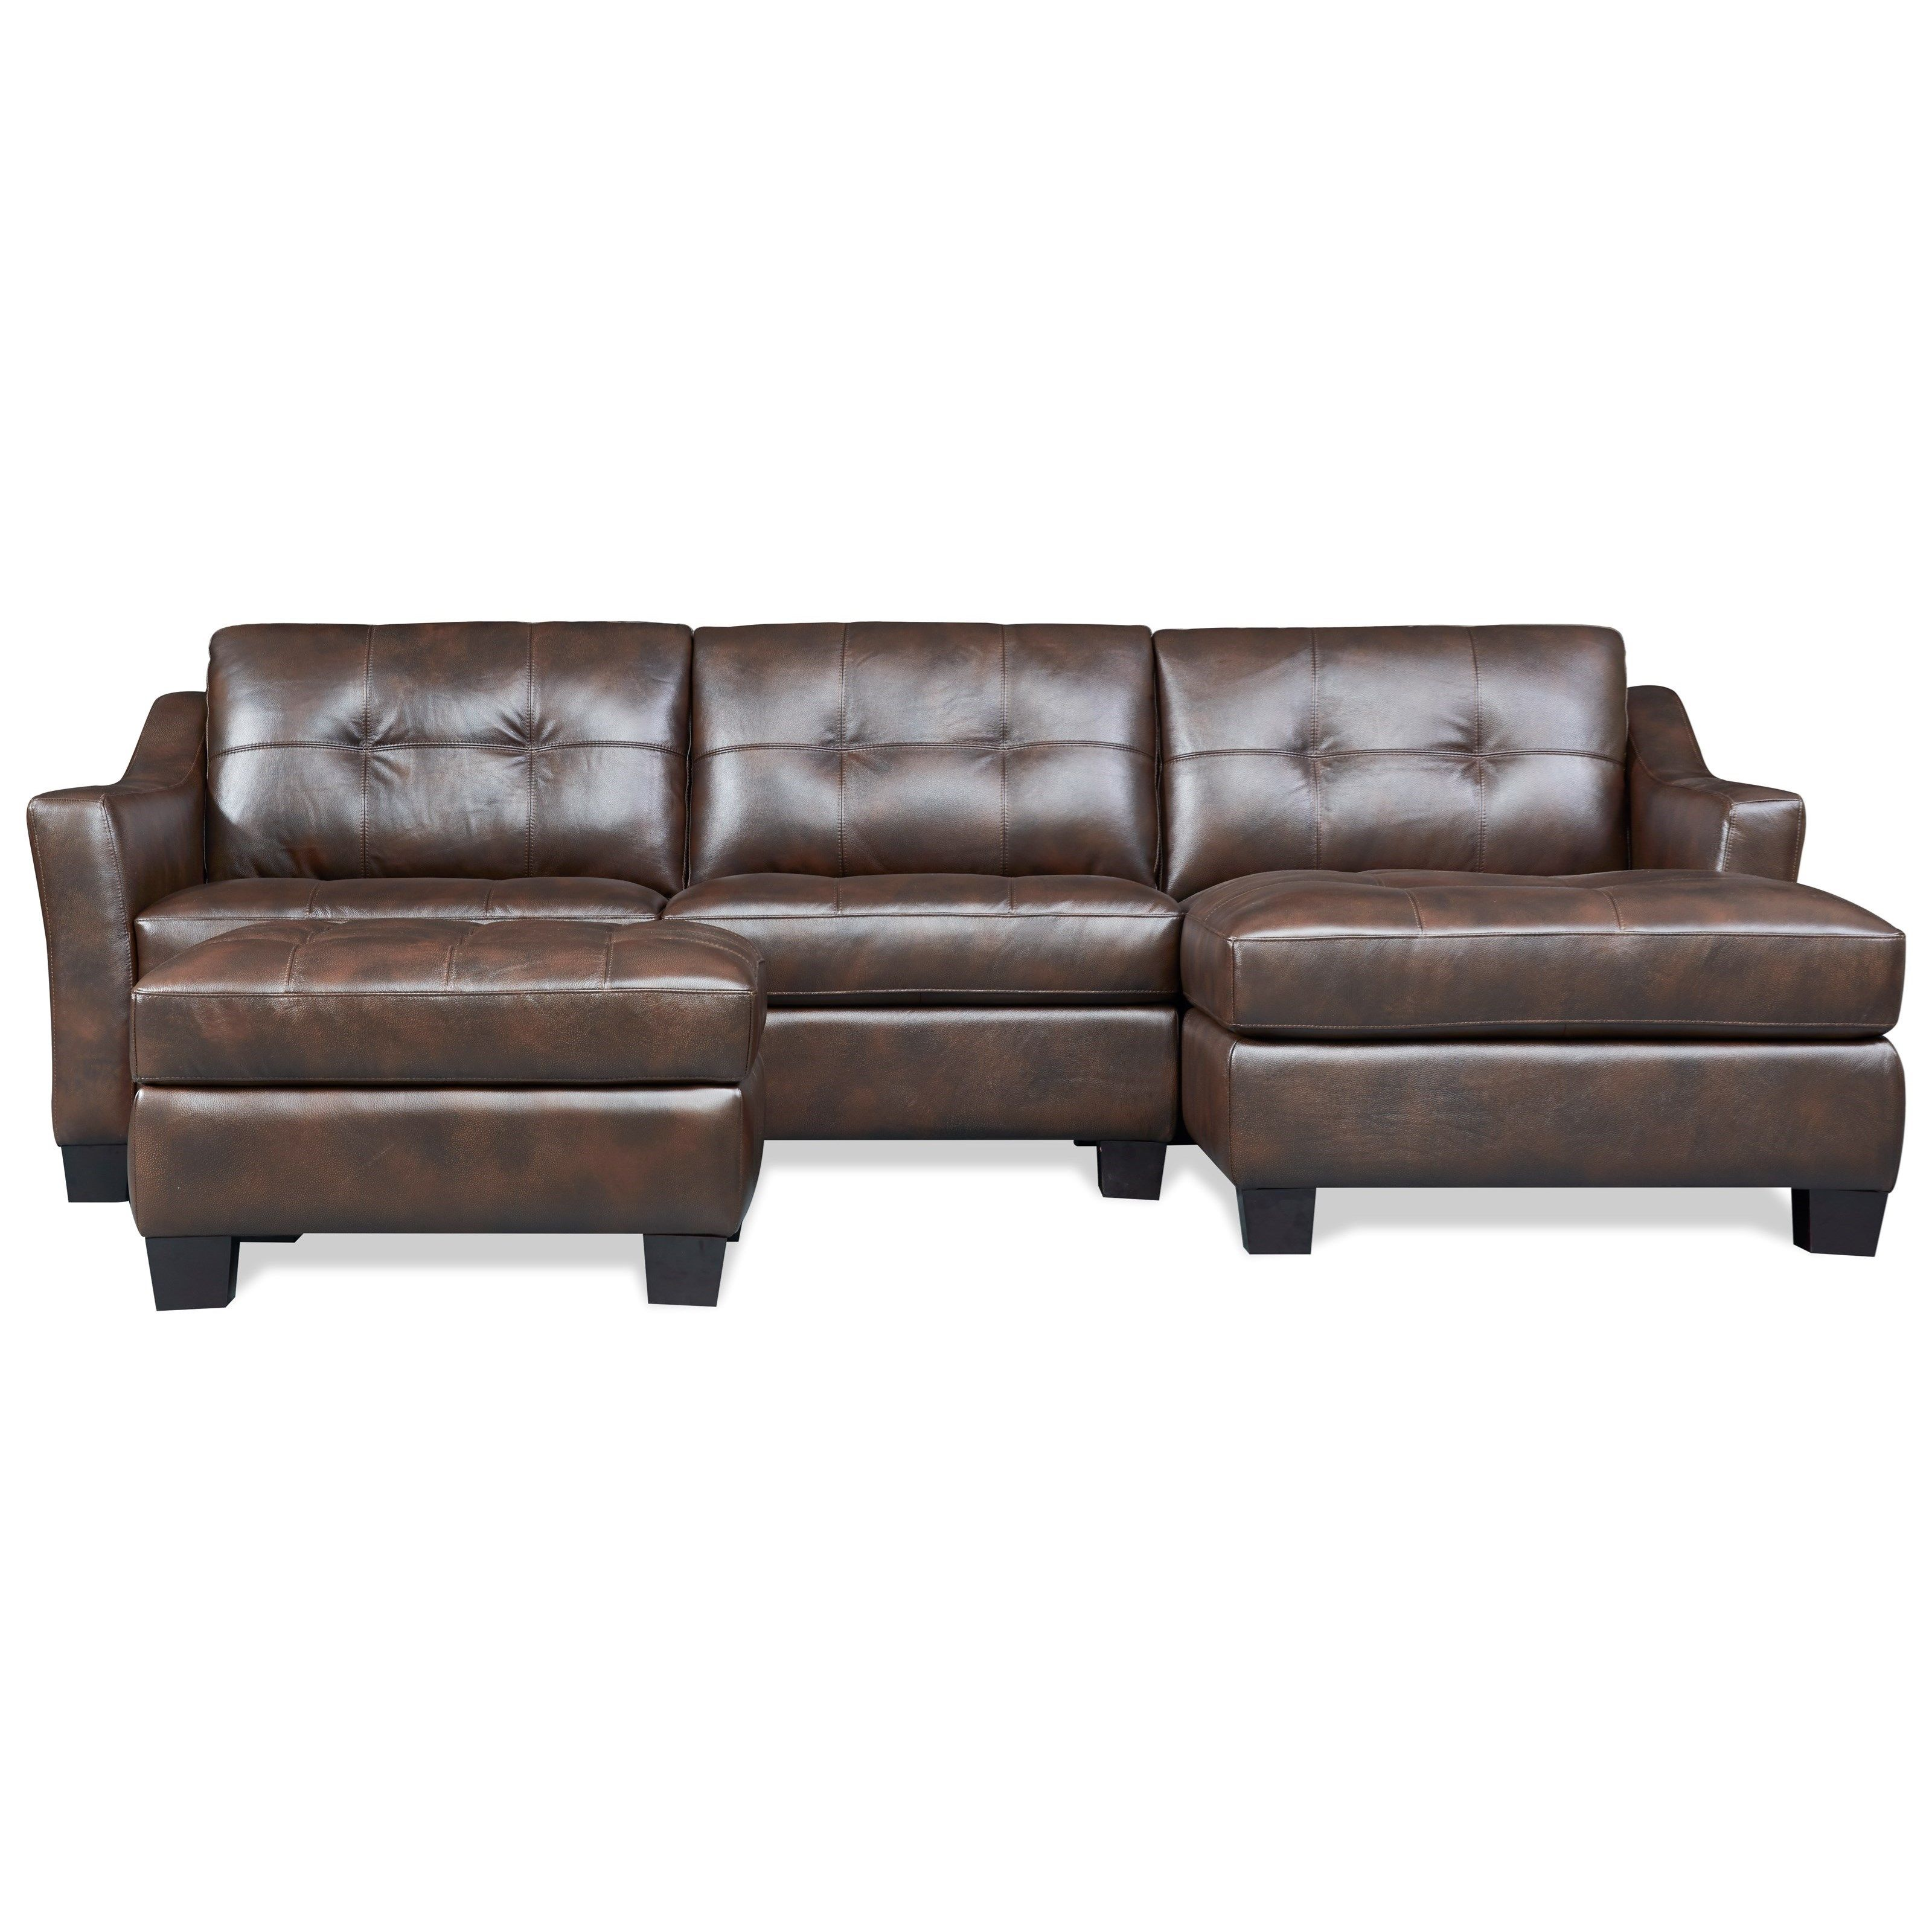 Nelson Contemporary 2 Piece Leather Sectional With Chaise By